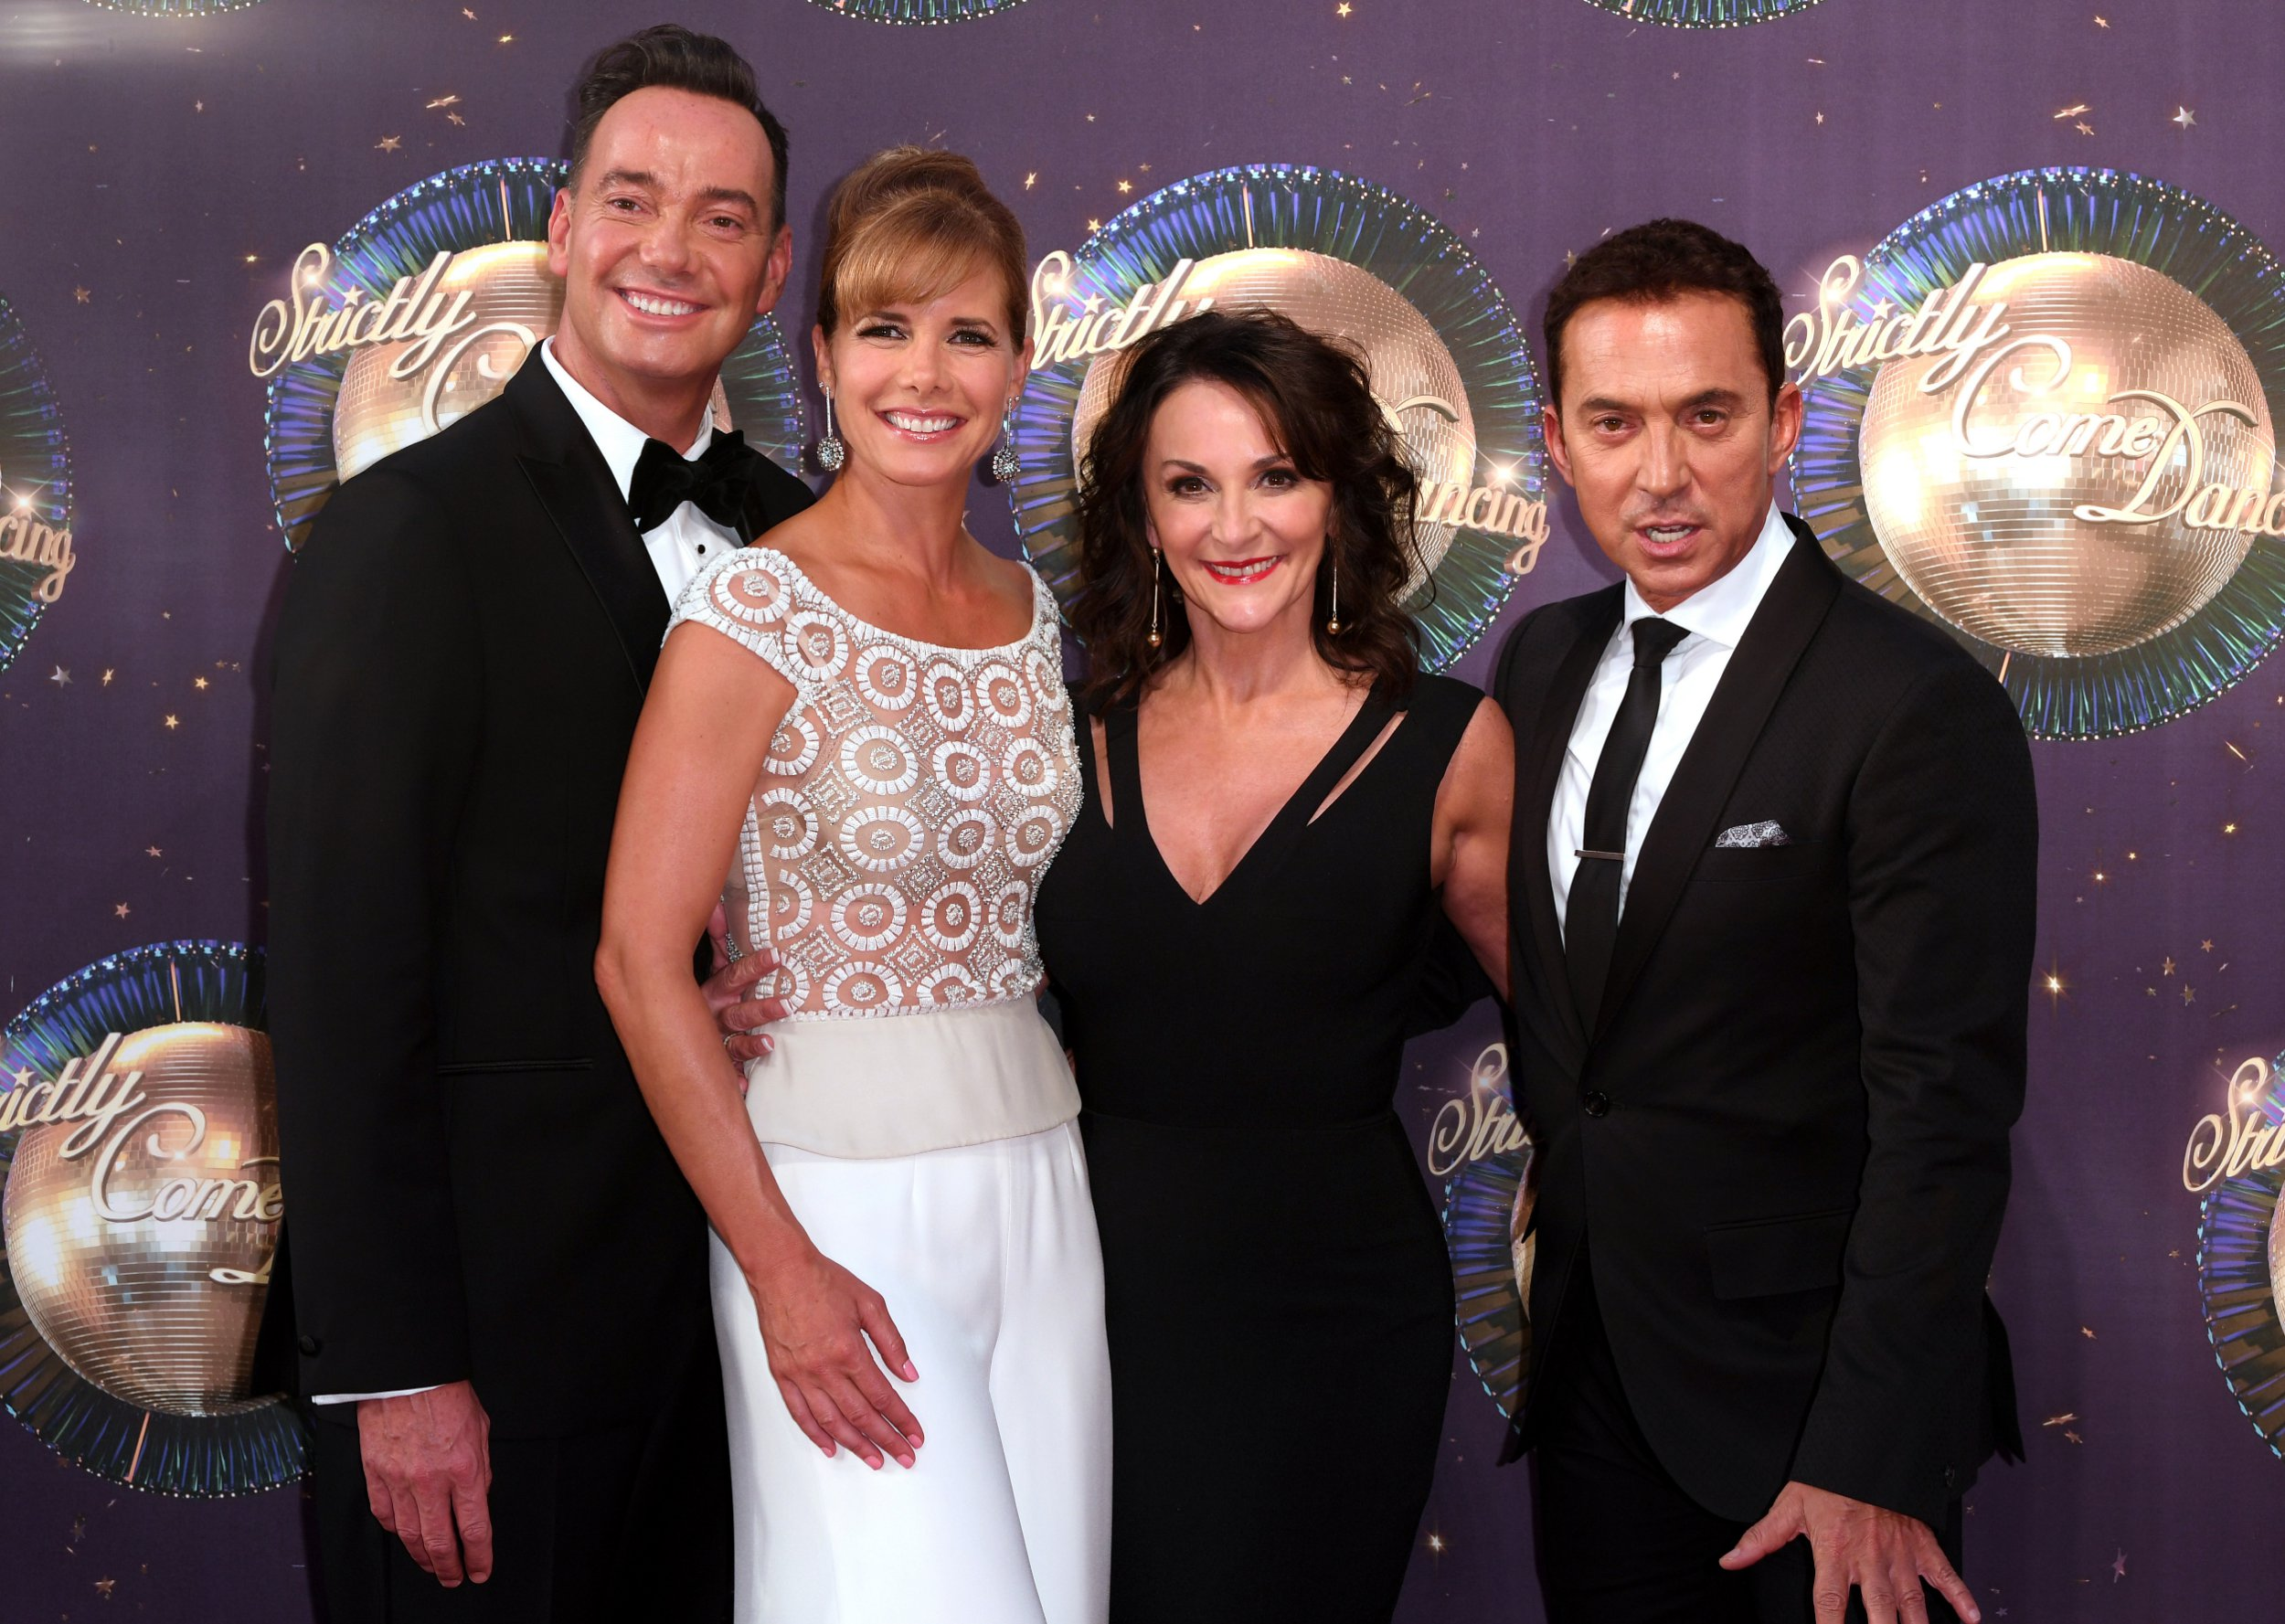 Mandatory Credit: Photo by David Fisher/REX/Shutterstock (9028516ih) Craig Revel Horwood, Darcey Bussell, Shirley Ballas and Bruno Tonioli 'Strictly Come Dancing' launch, BBC Broadcasting House, London, UK - 28 Aug 2017